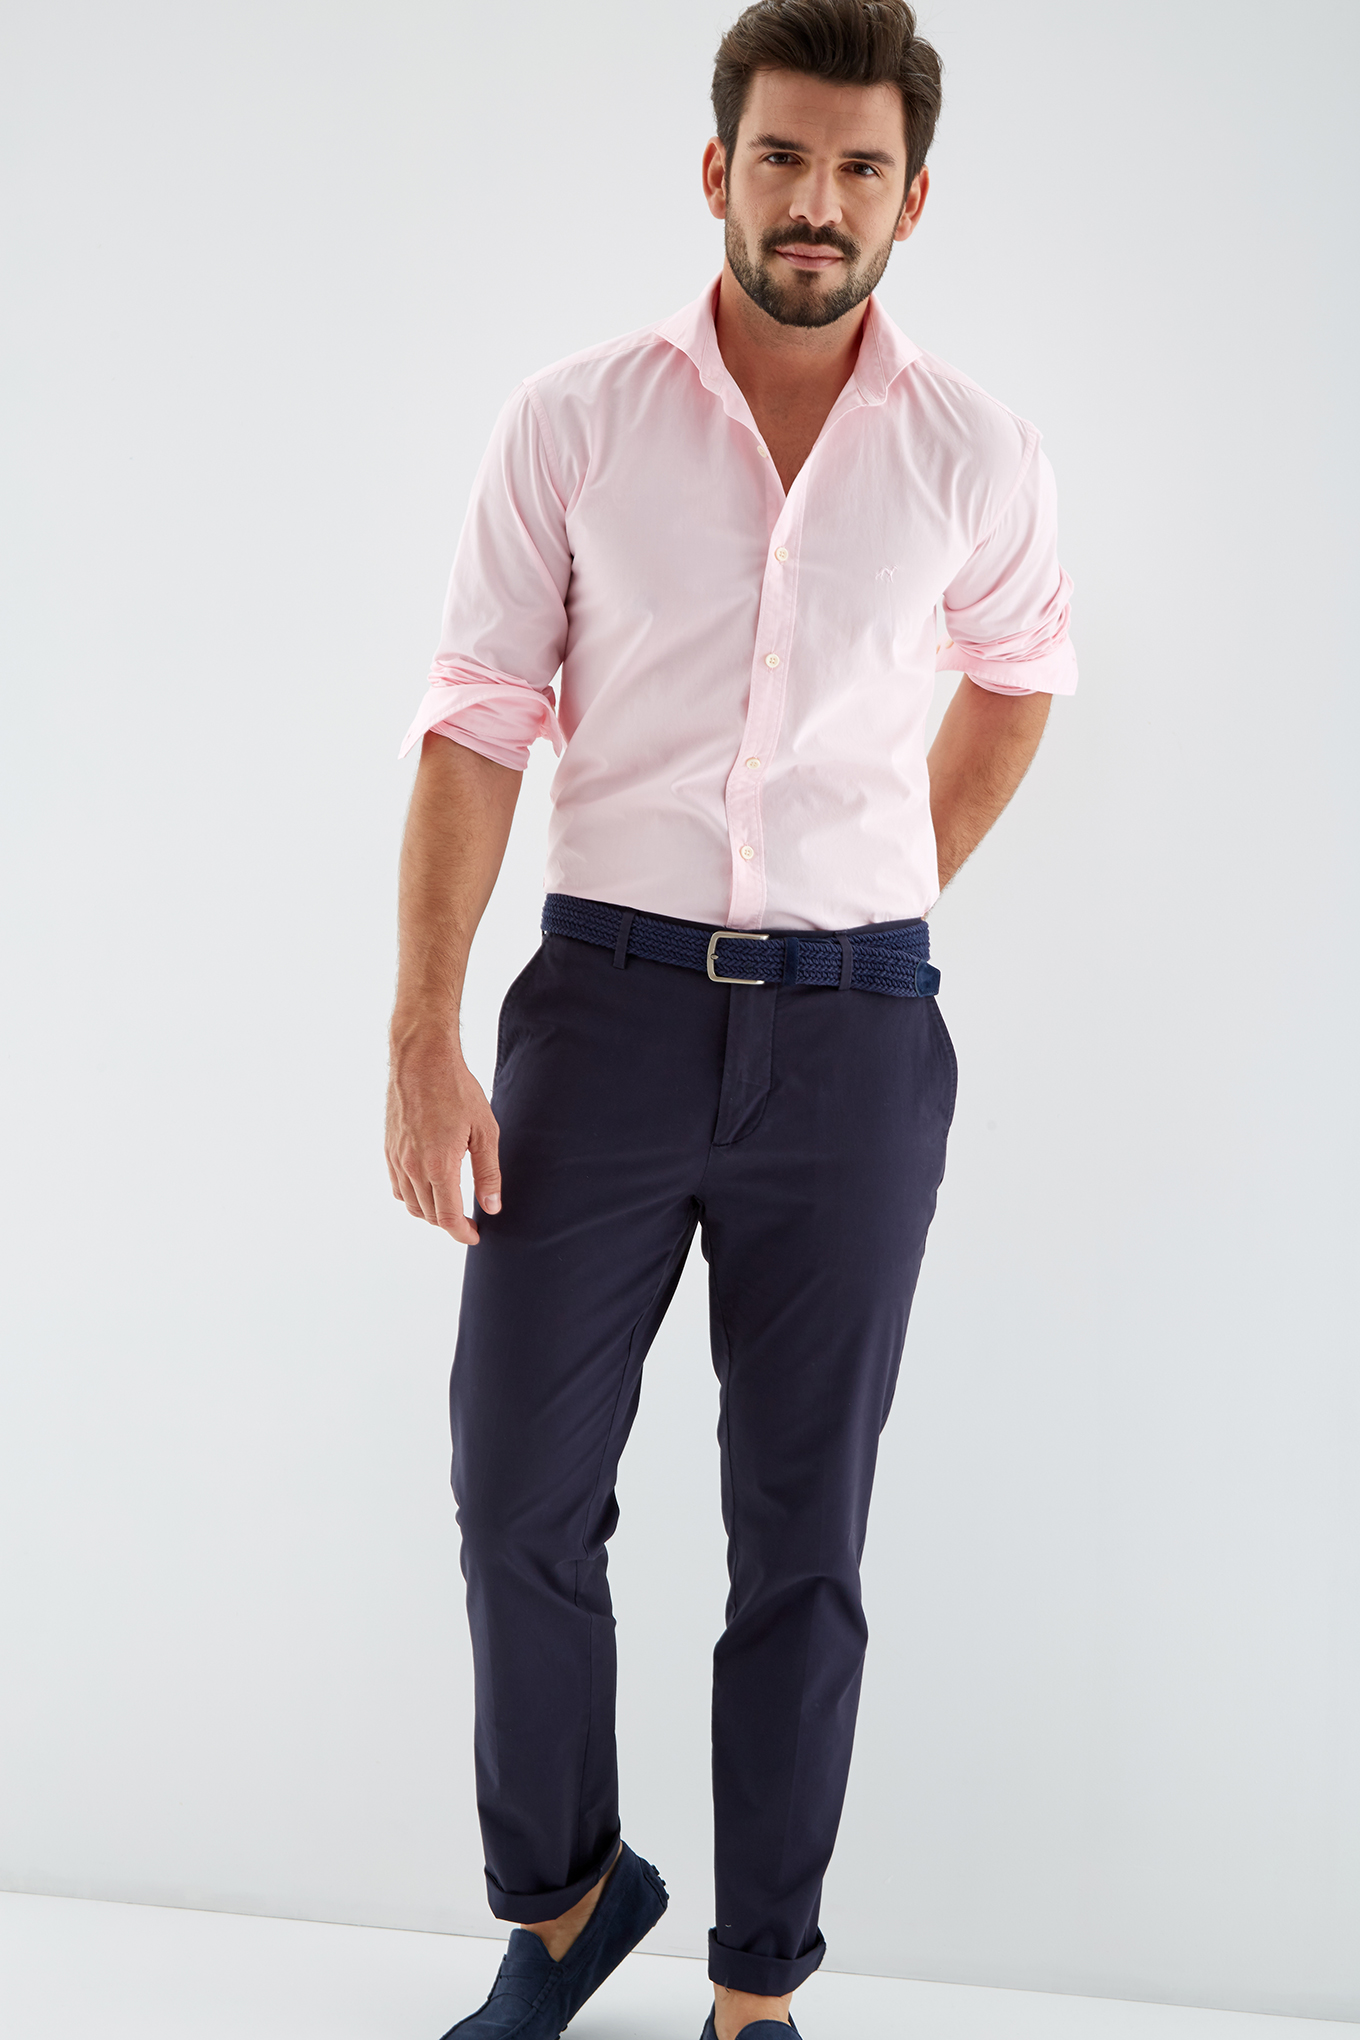 Shirt Light Pink Sport Man